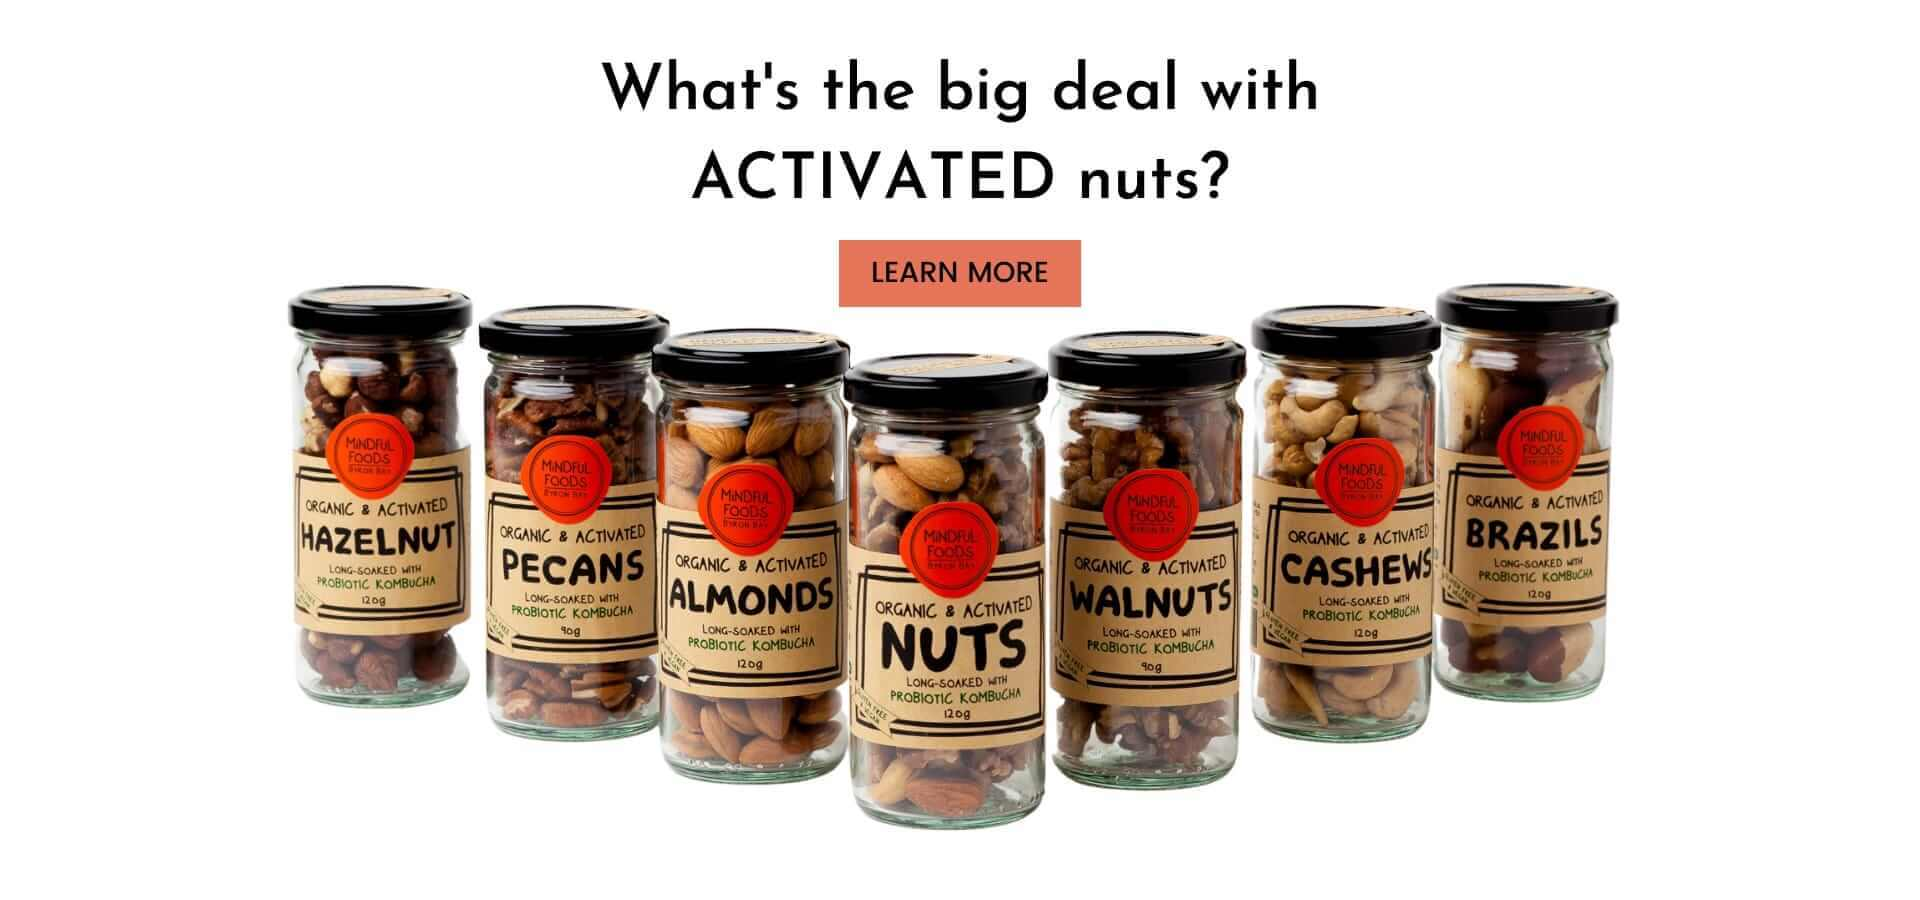 What's the big deal with activated nuts?